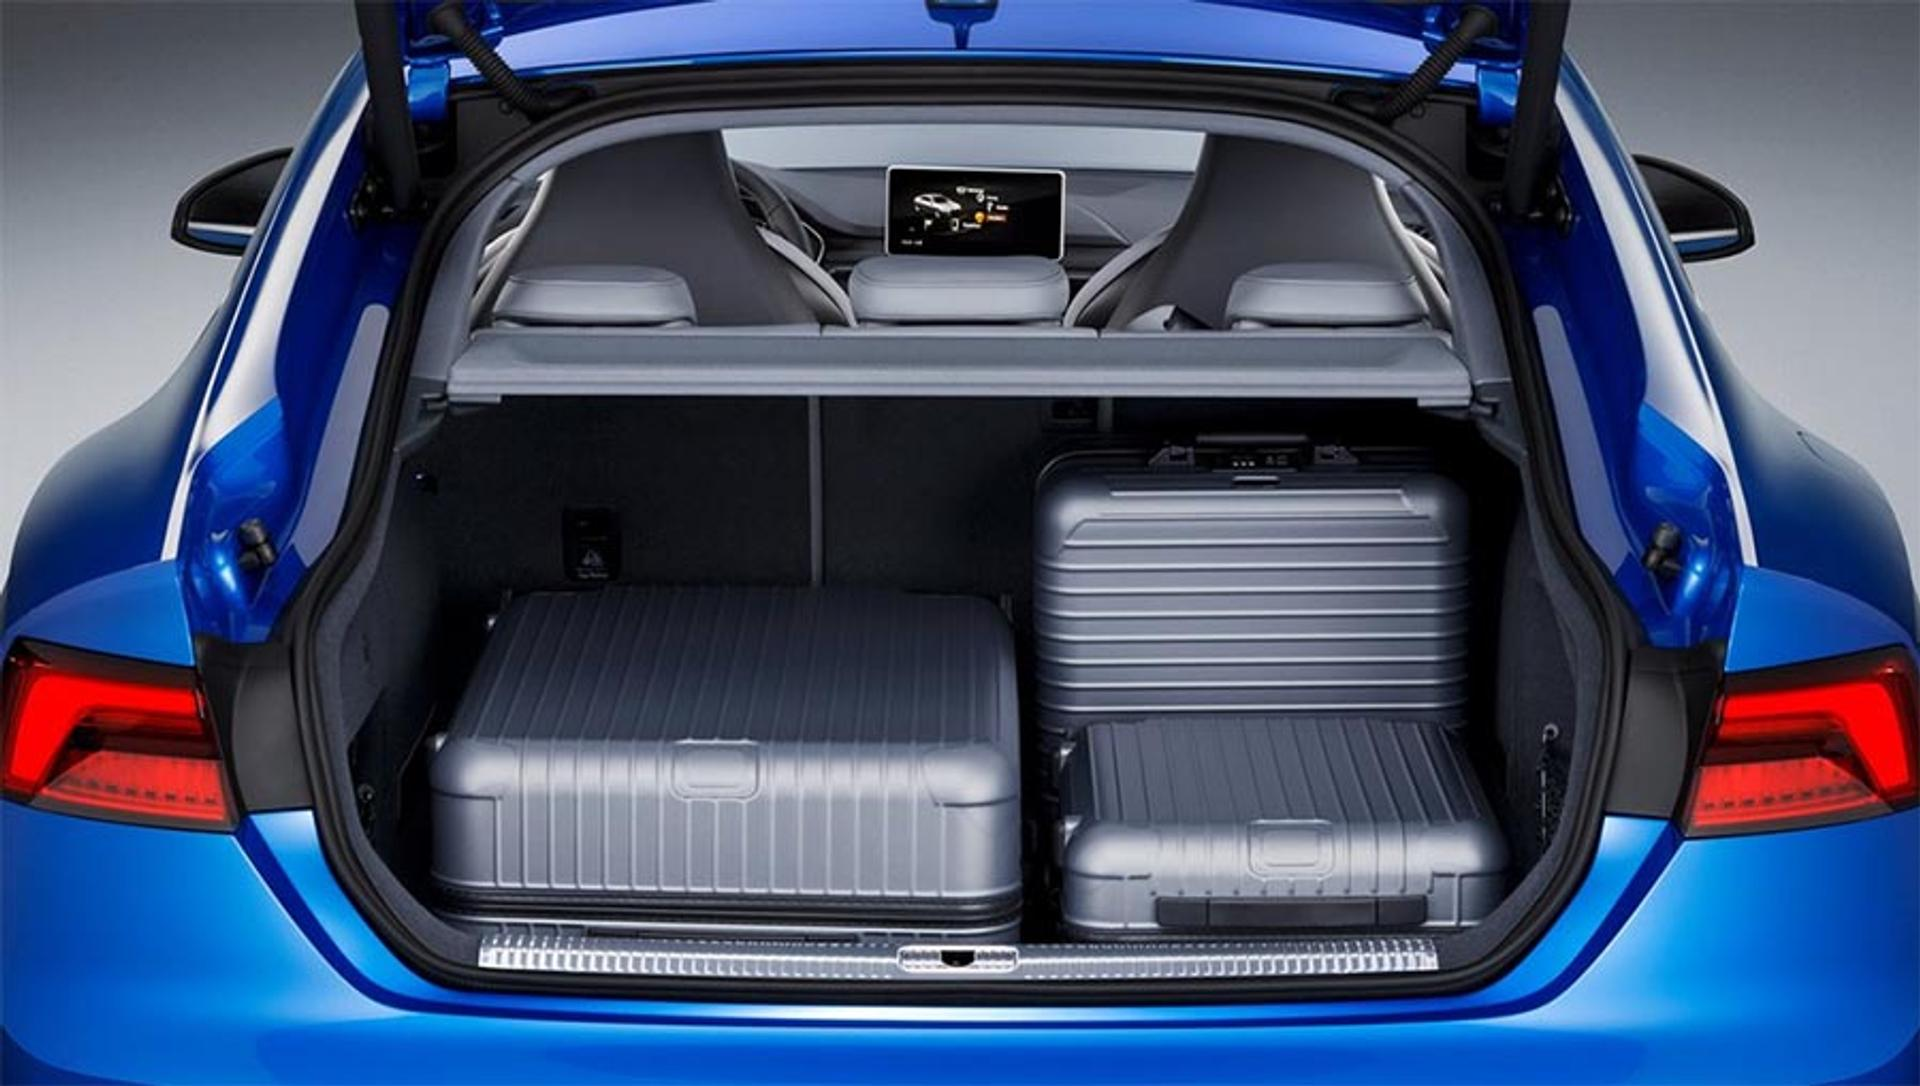 Audi S5 trunk with suitcases packed inside